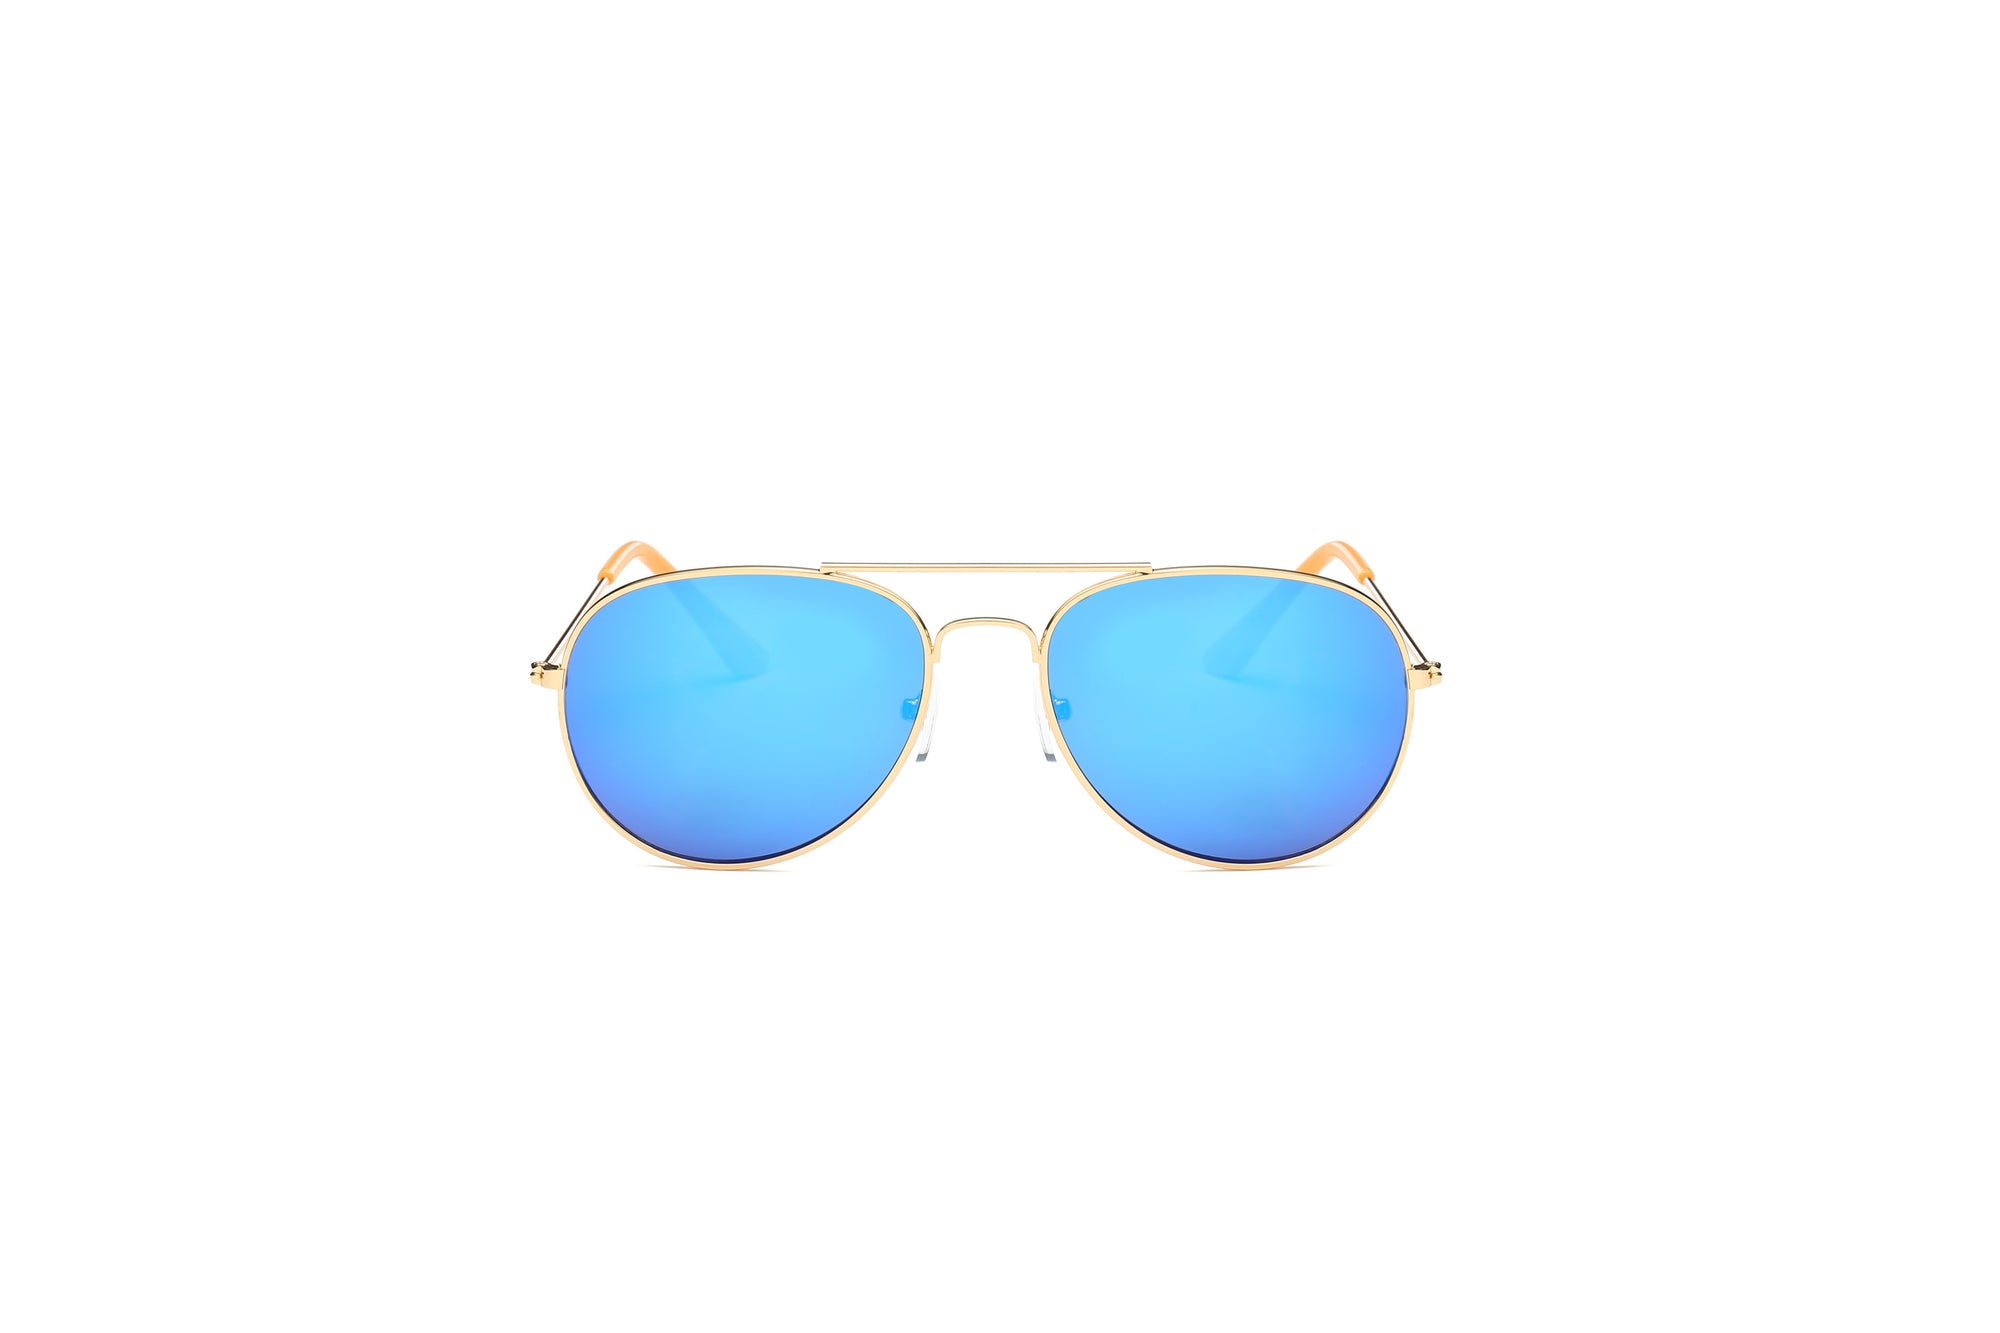 S1007 - Classic Small Aviator Sunglasses - Iris Fashion Inc. | Wholesale Sunglasses and Glasses